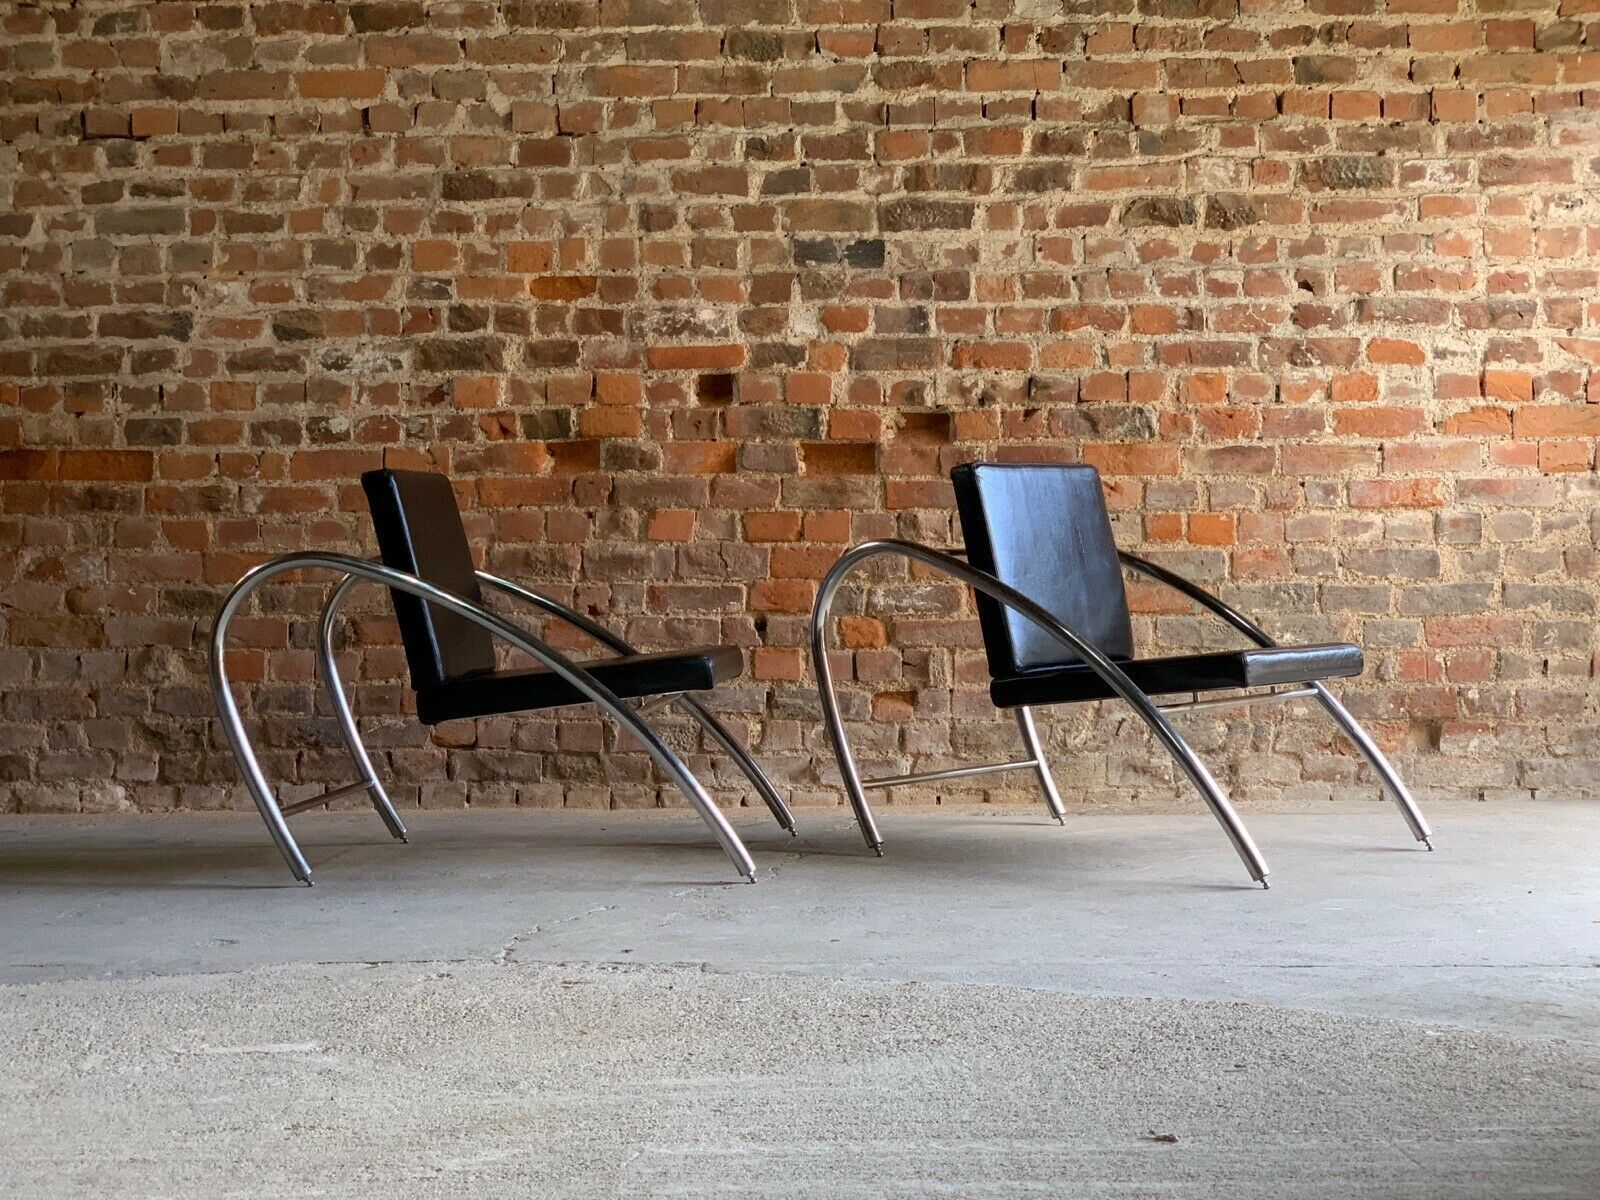 Pleasing Moreno Chrome Leather Lounge Chairs By Francois Scali Alain Domingo For Nemo Theyellowbook Wood Chair Design Ideas Theyellowbookinfo